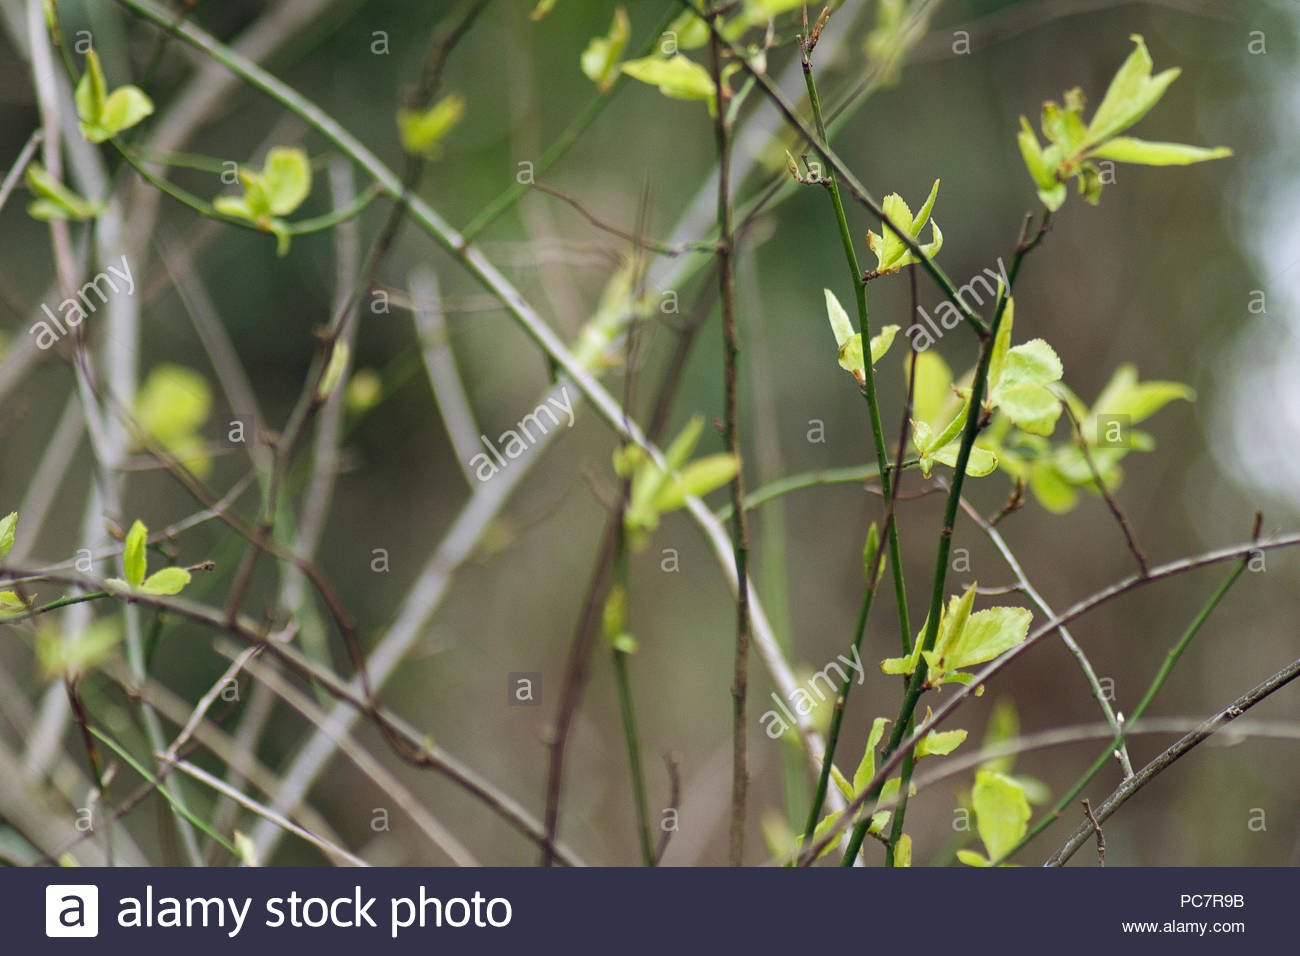 Branches and plant stems with small leaves - Stock Image